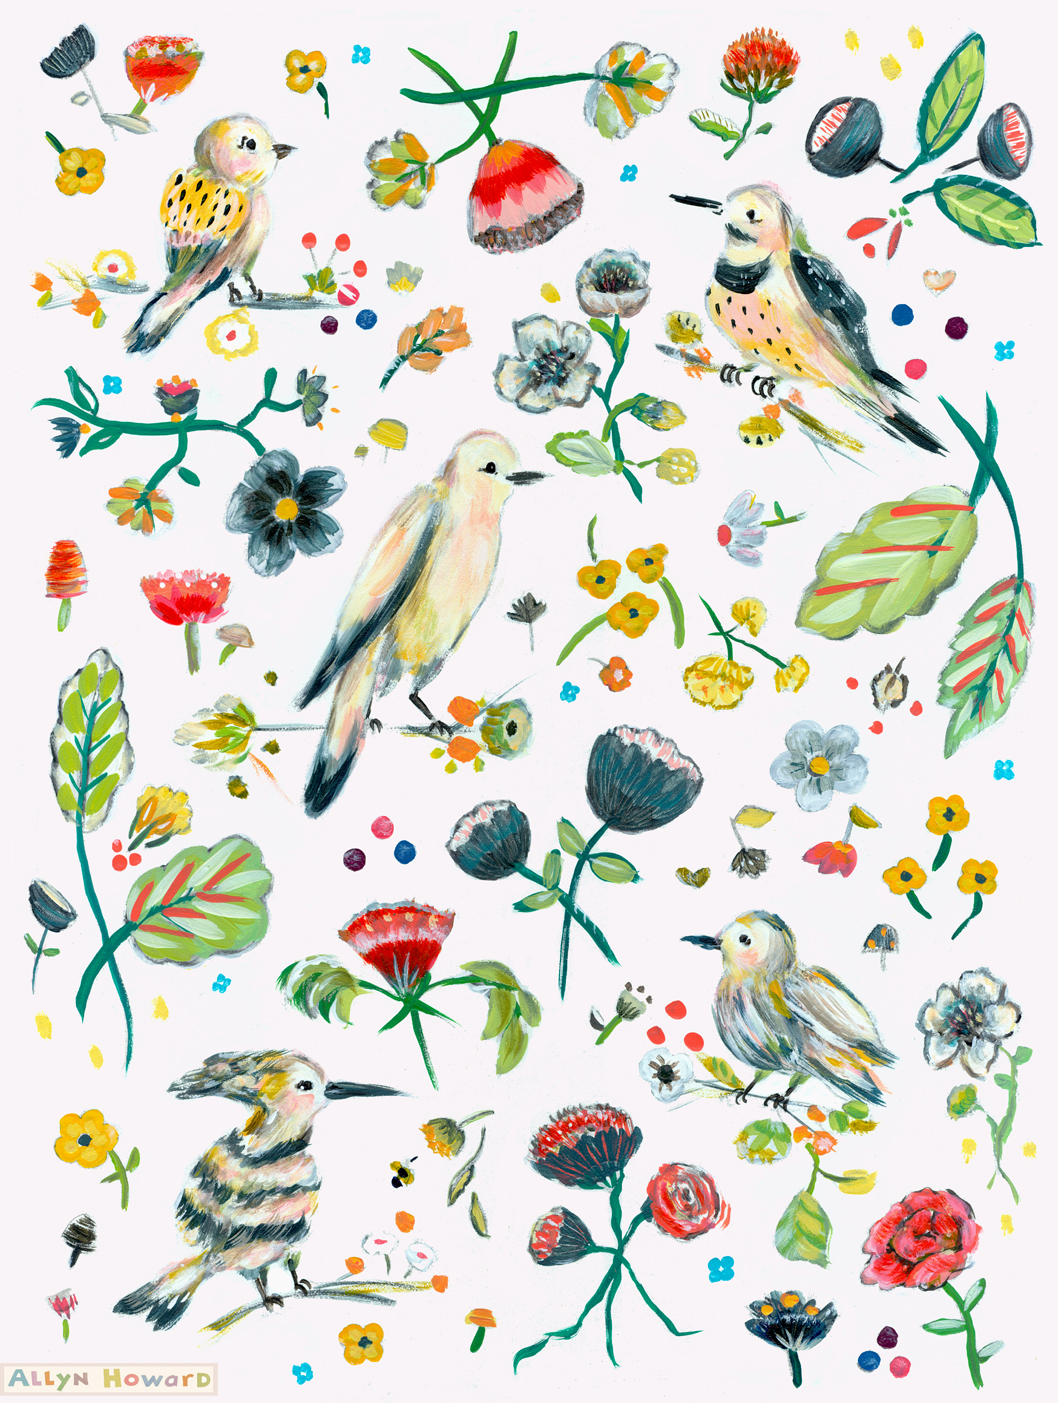 Allyn_Howard_Birds-Botanica_19.jpg